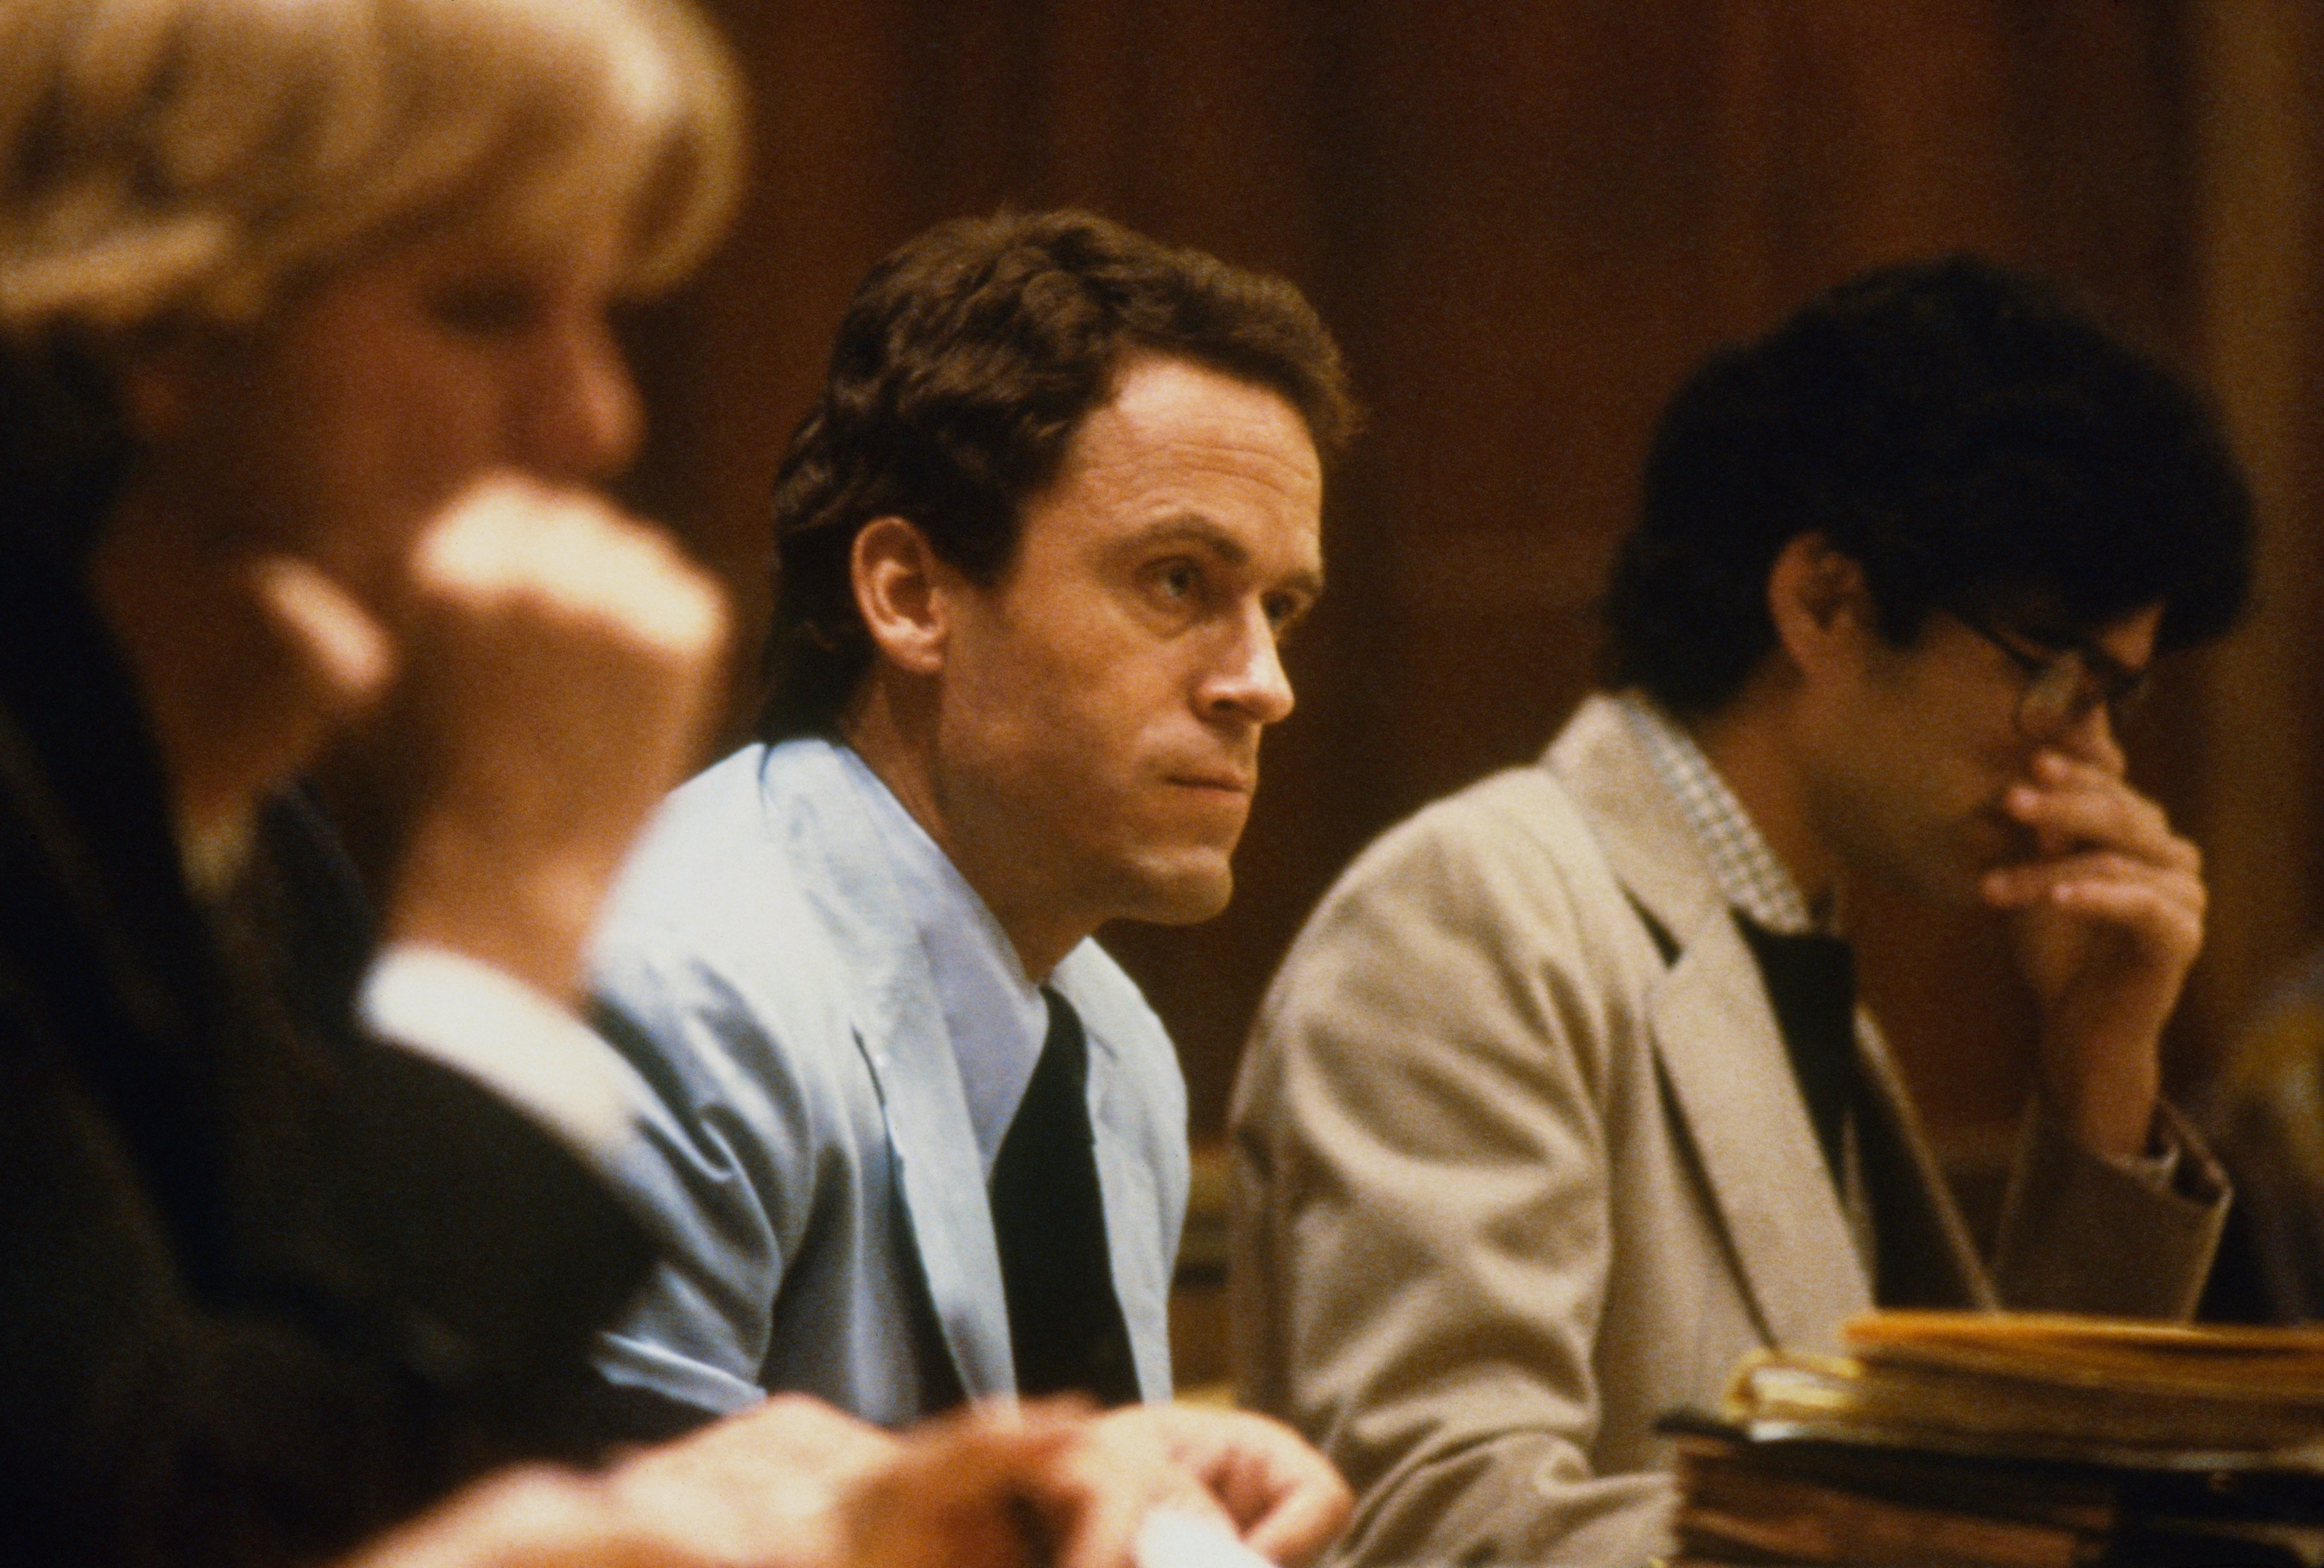 Theodore Bundy, seated in court, charged with the killings of two FSU coeds.  Source: Getty Images